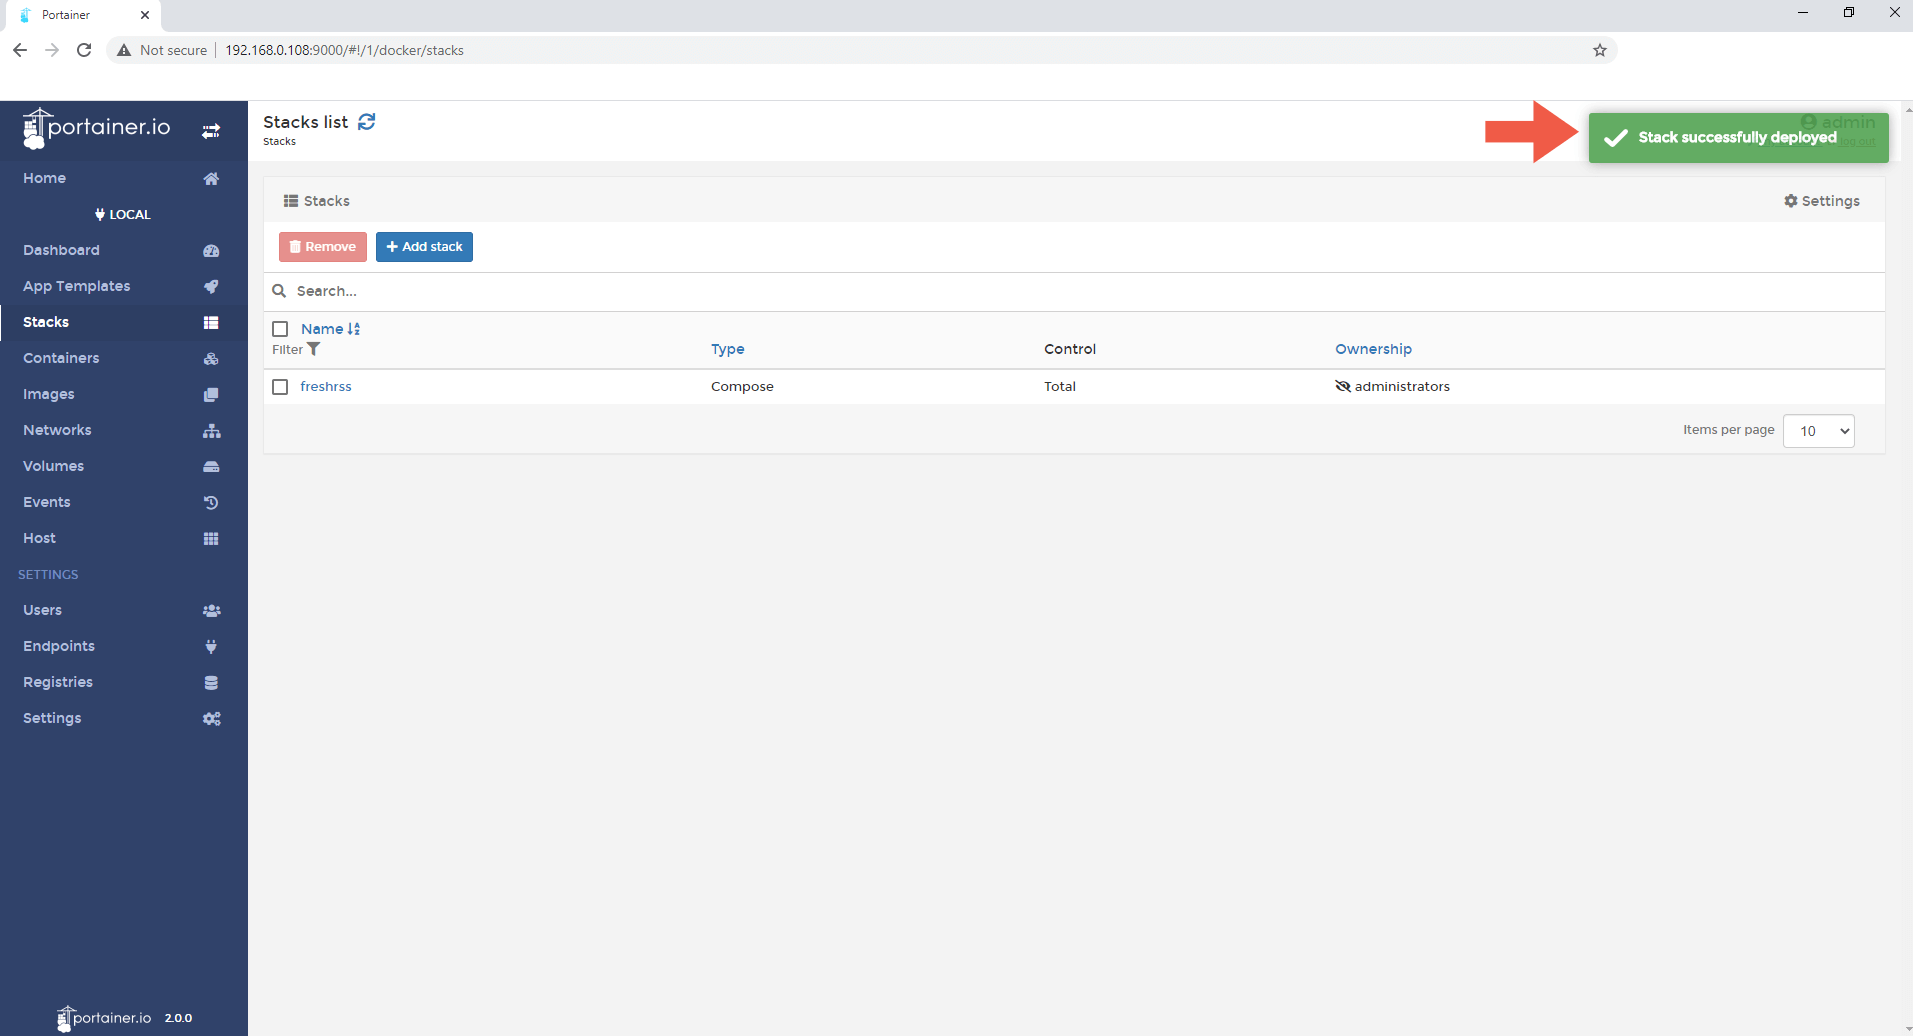 5 Synology NAS FreshRSS Docker container set up